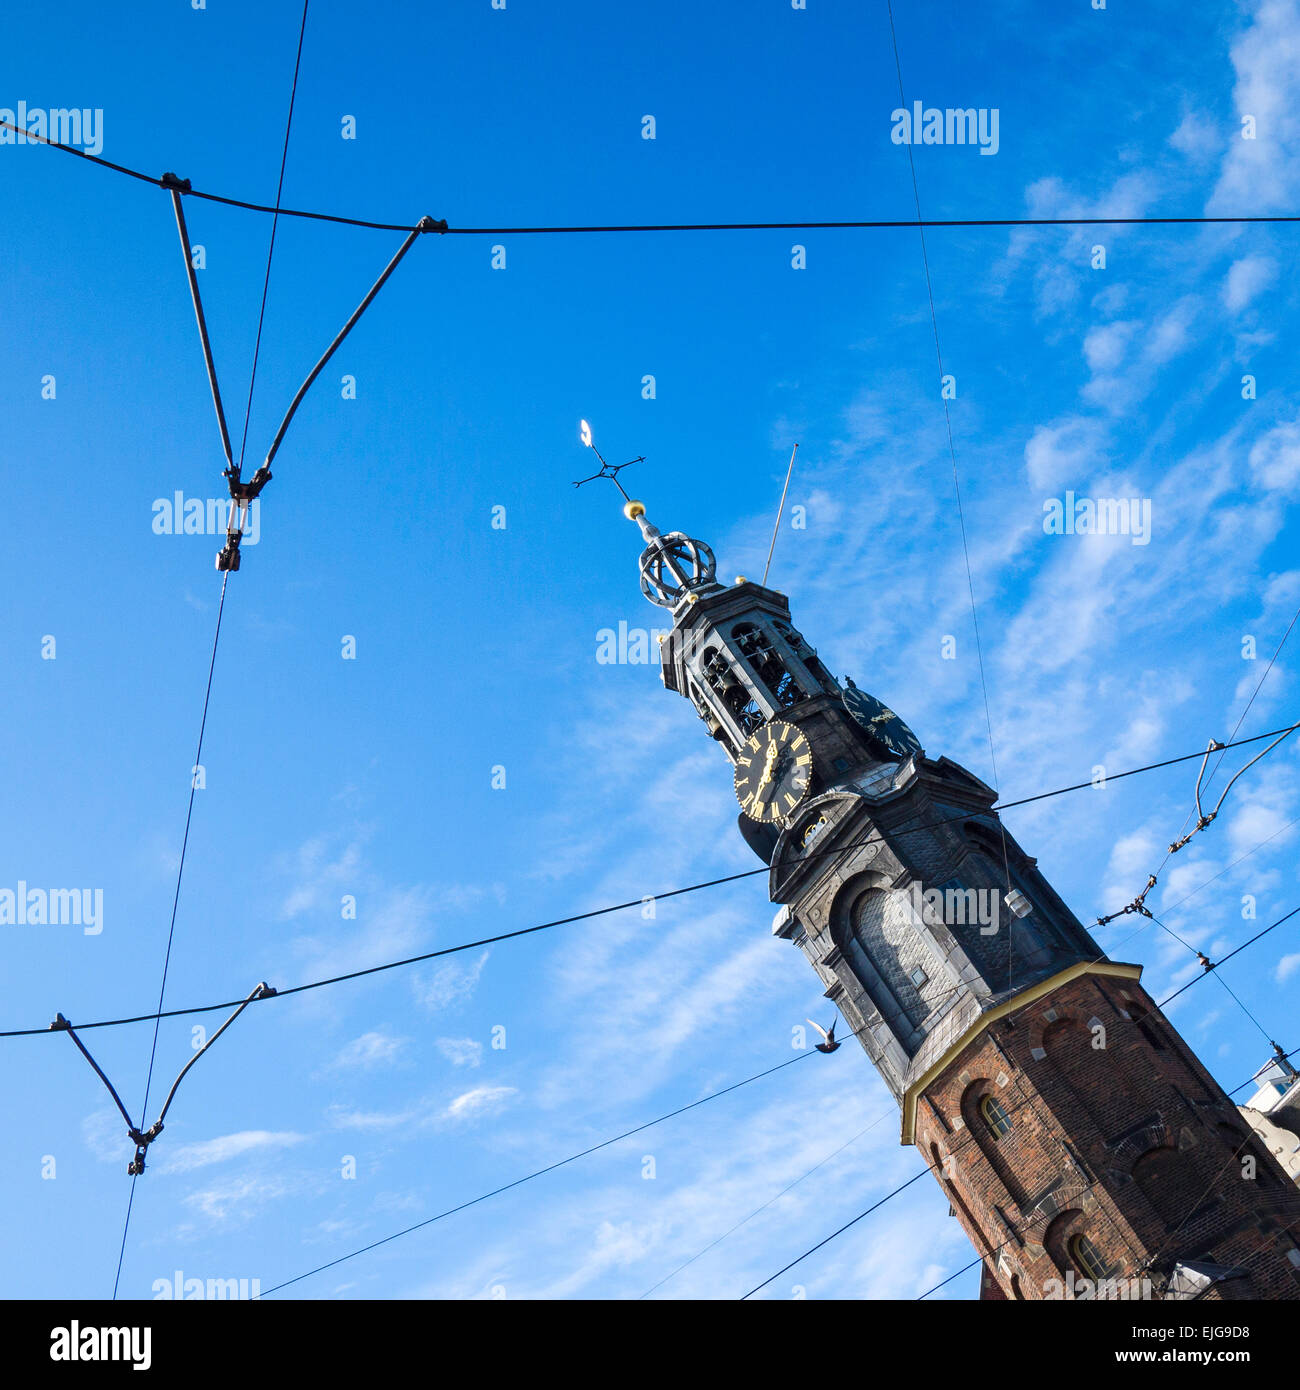 The Munttoren, or 'Coin Tower', a tower in Amsterdam., Holland, on Muntplein Square, near the flower market - Stock Image